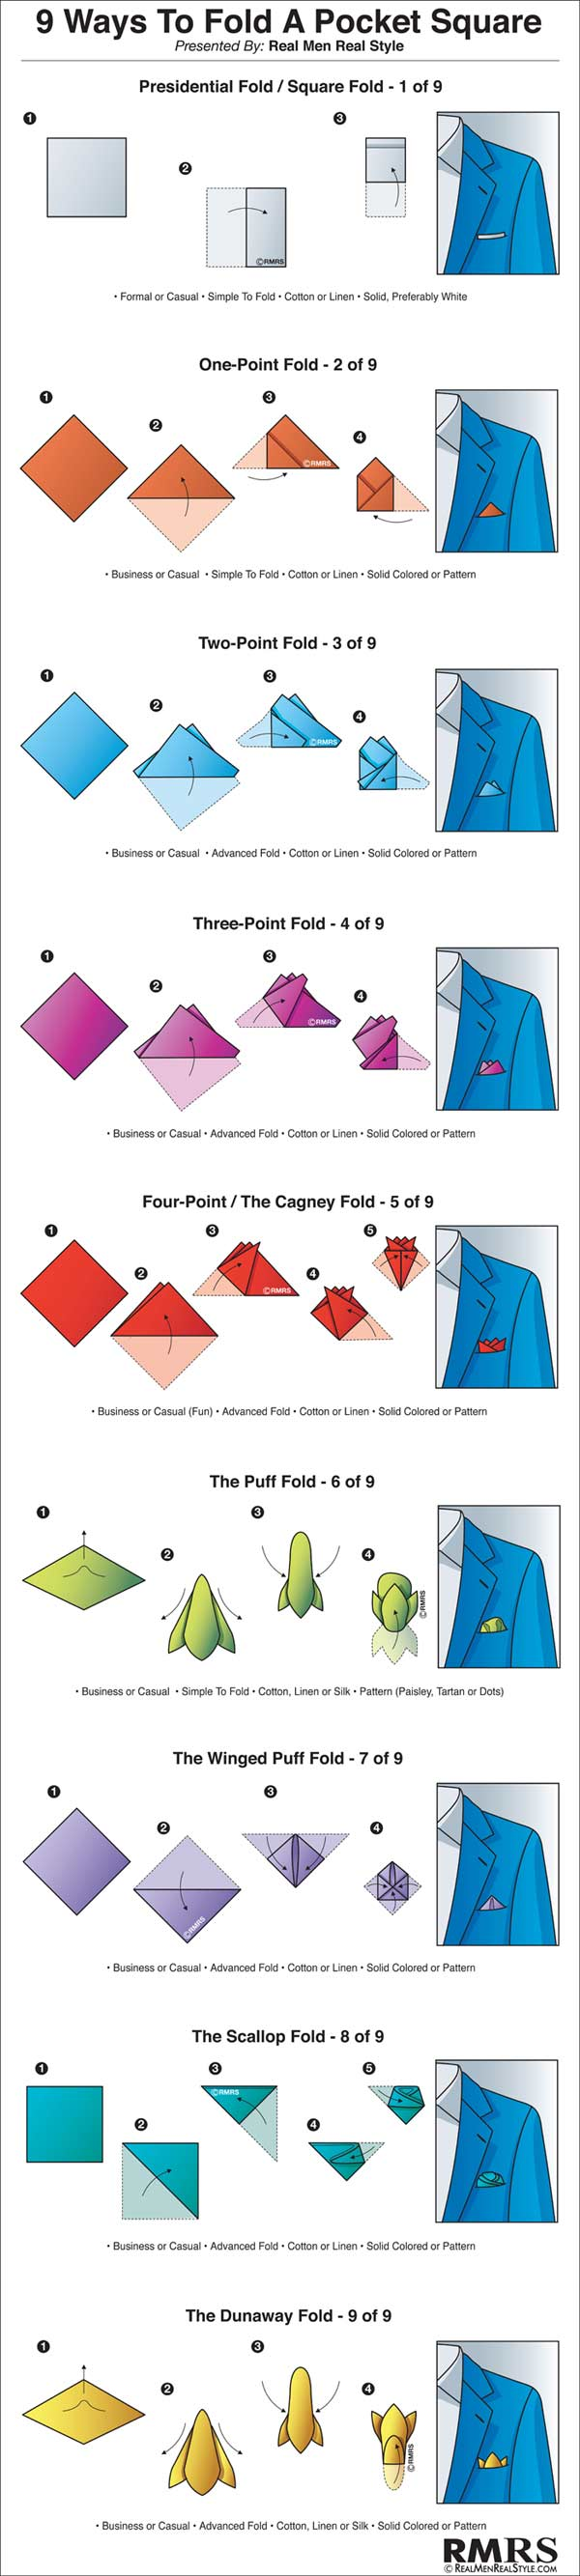 Best way to fold clothes for a trip - 9 Ways To Fold A Pocket Square Infographic